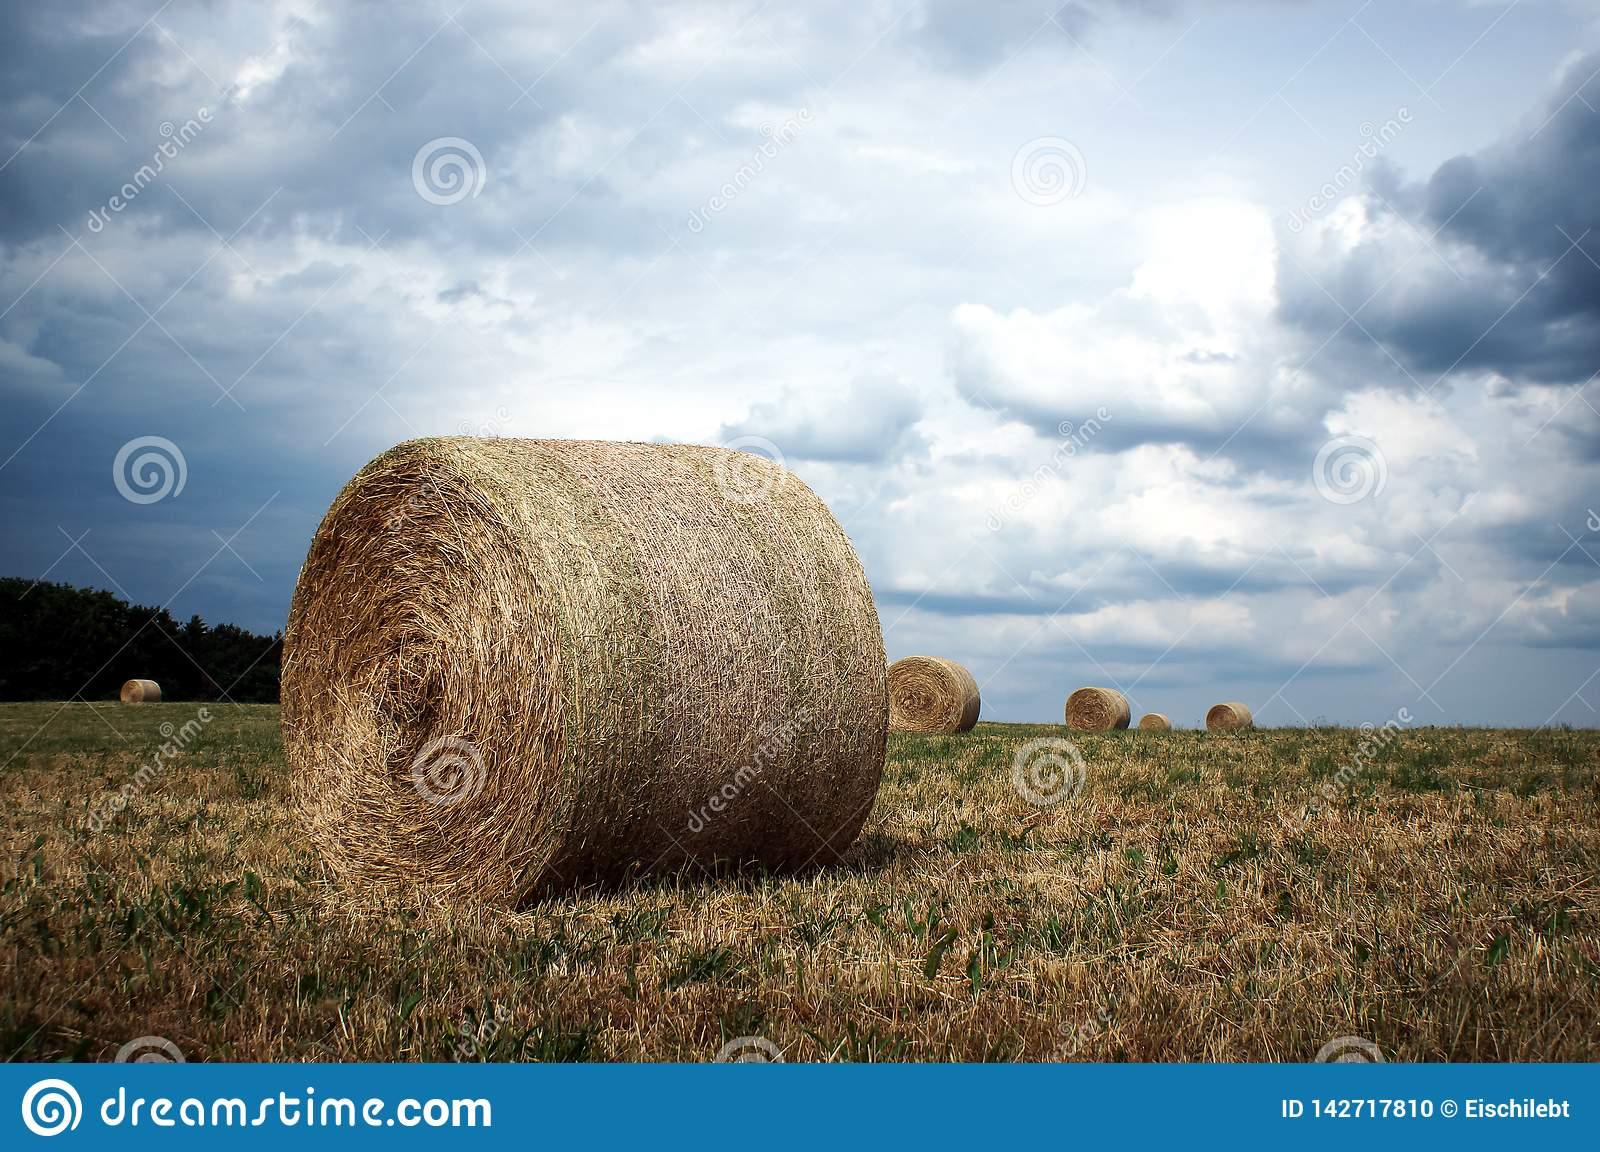 Straw bales under stormy clouds